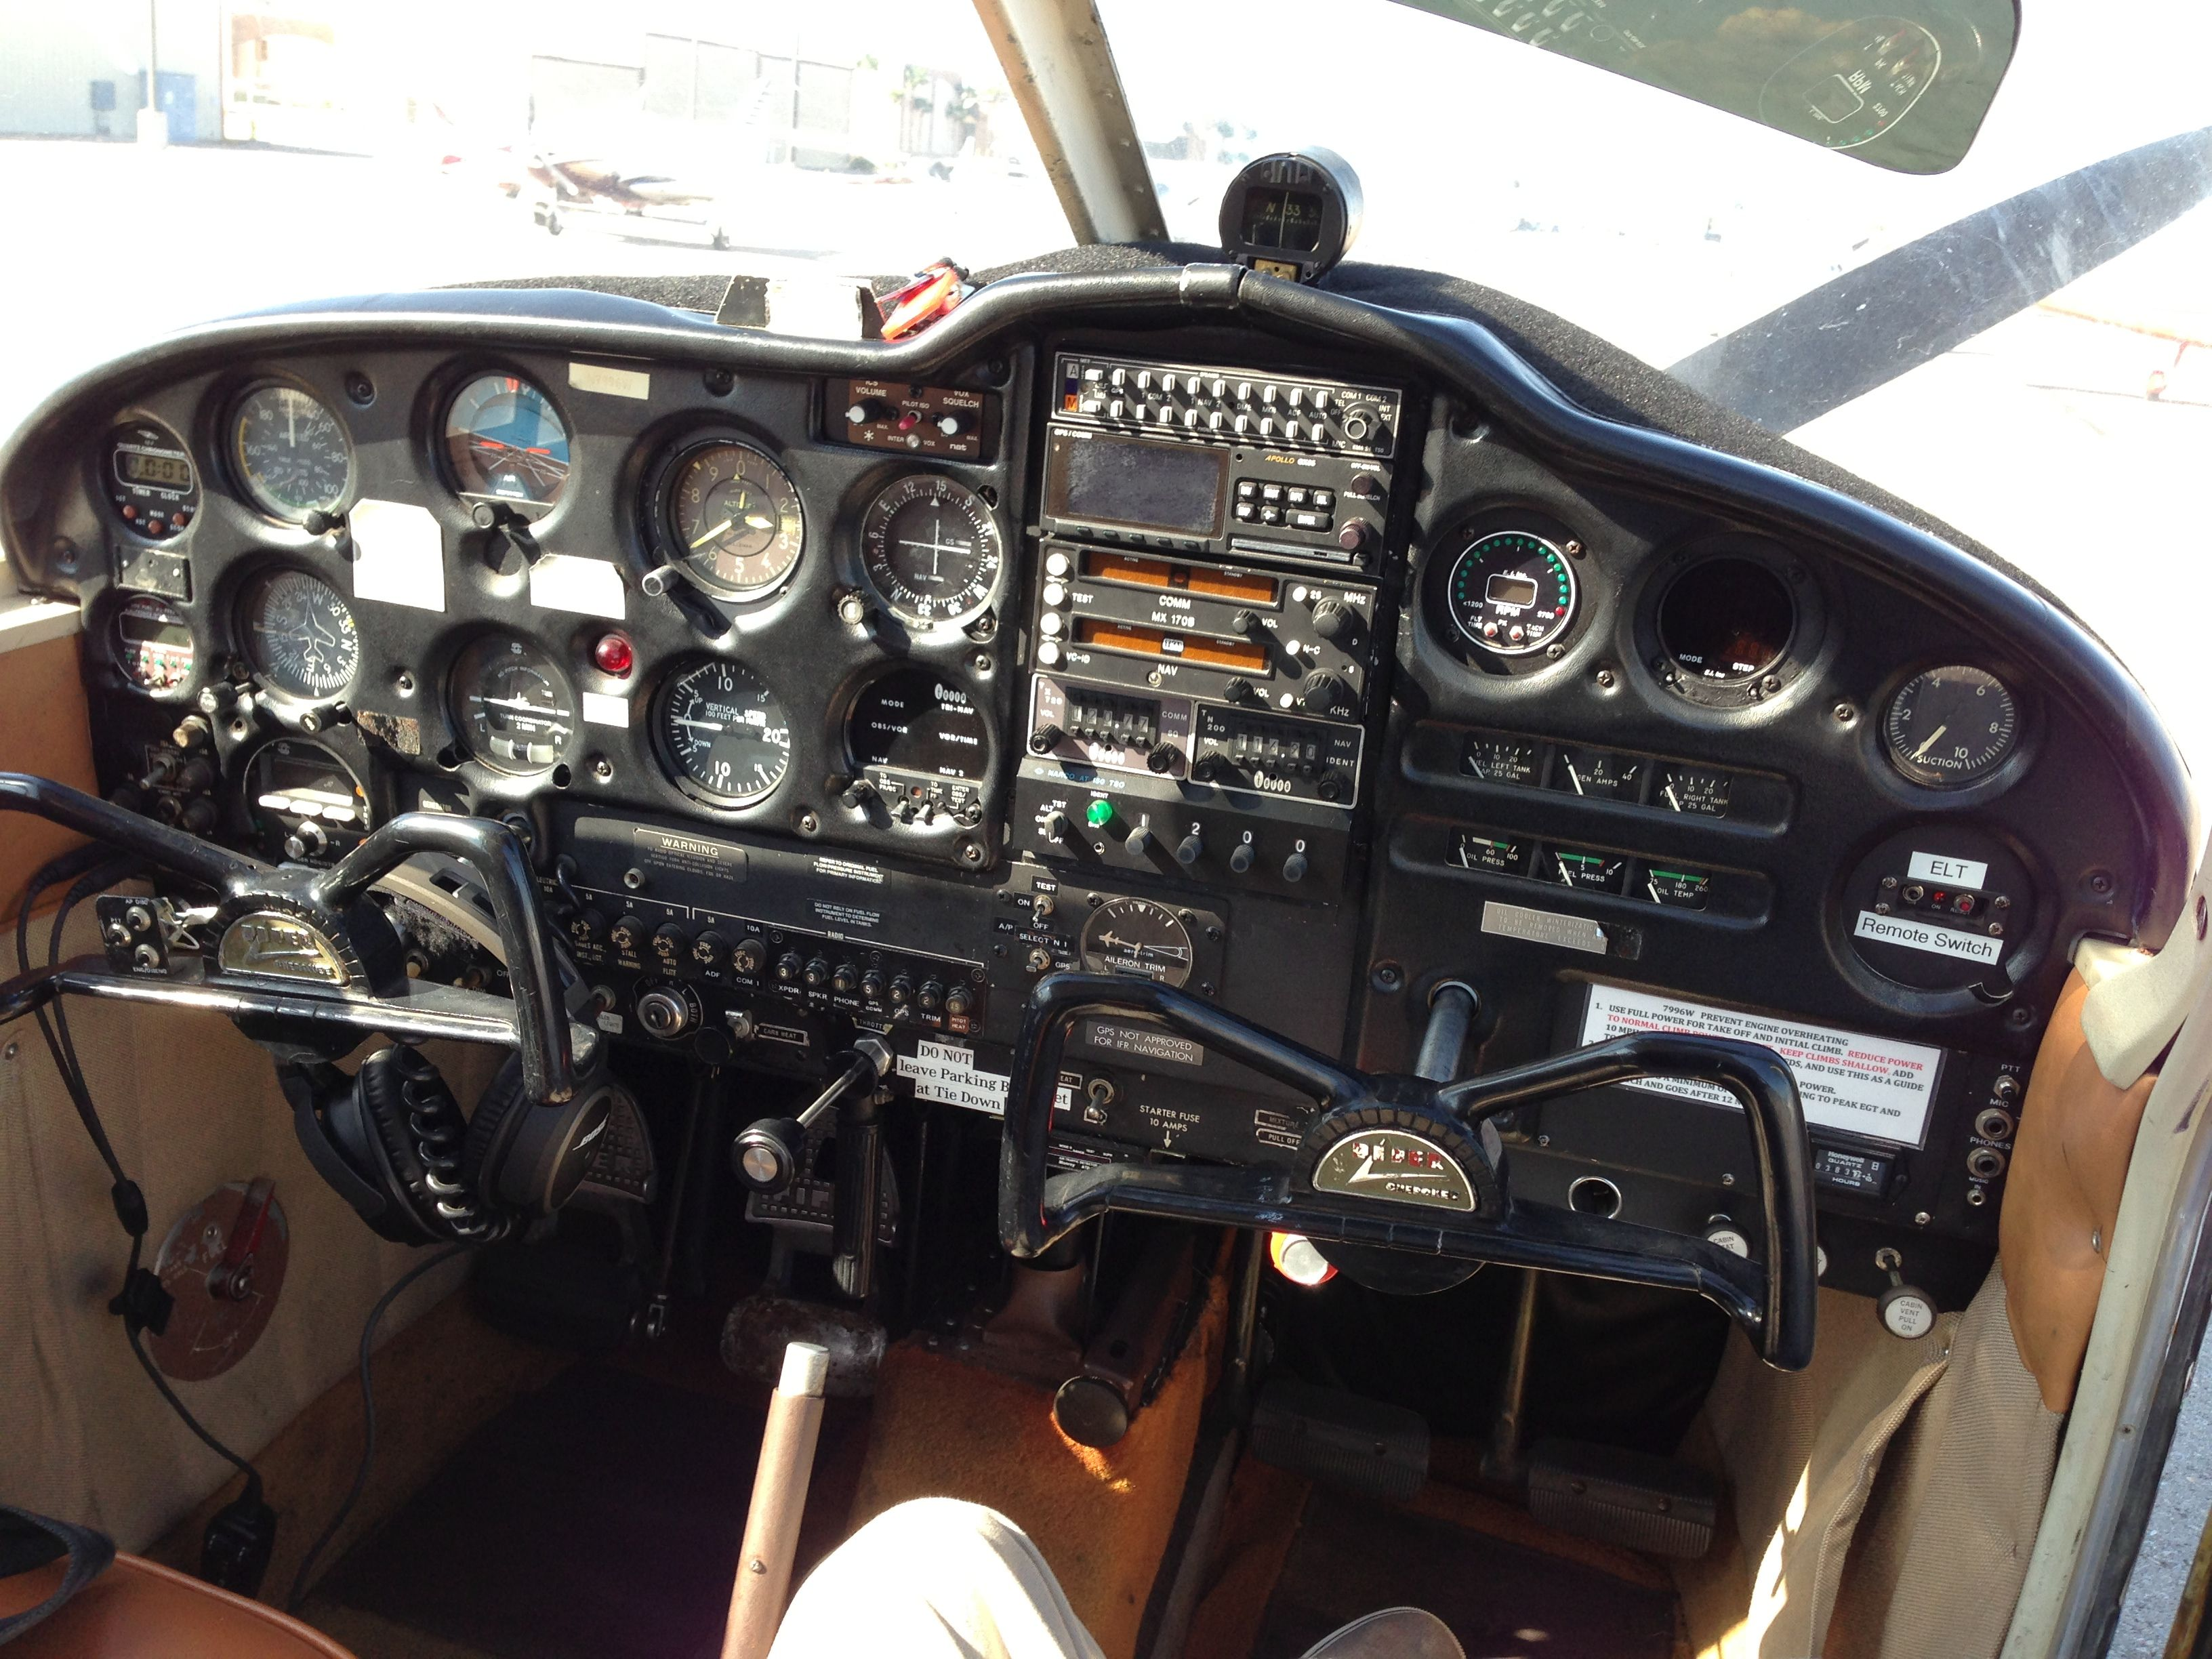 Piper Cherokee Cockpit | Aviation | Airplane, Aircraft, Aviation